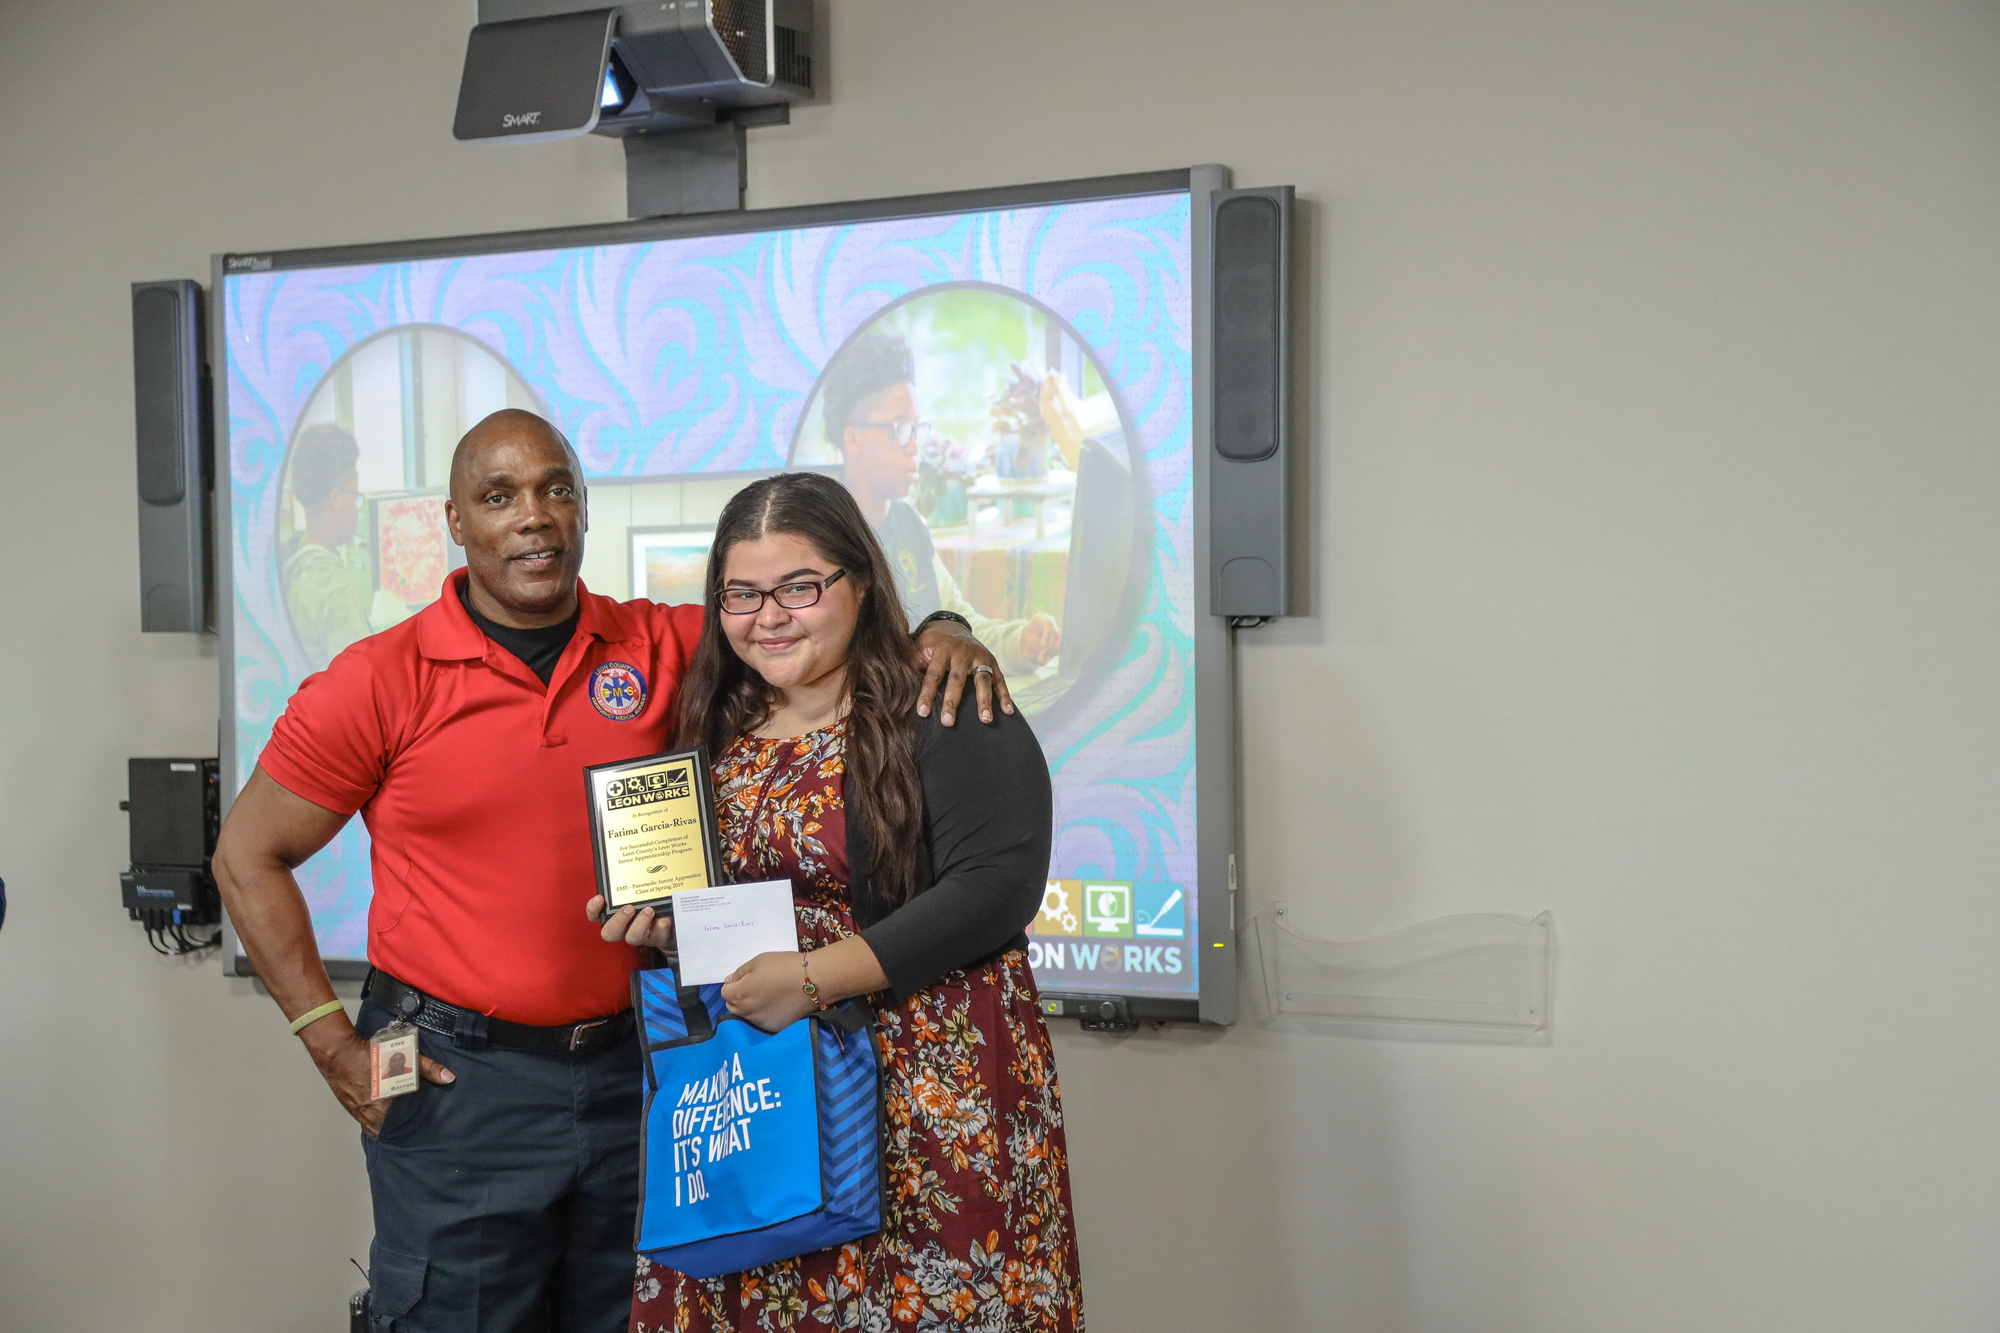 EMS Junior Apprentice pictured with her mentor